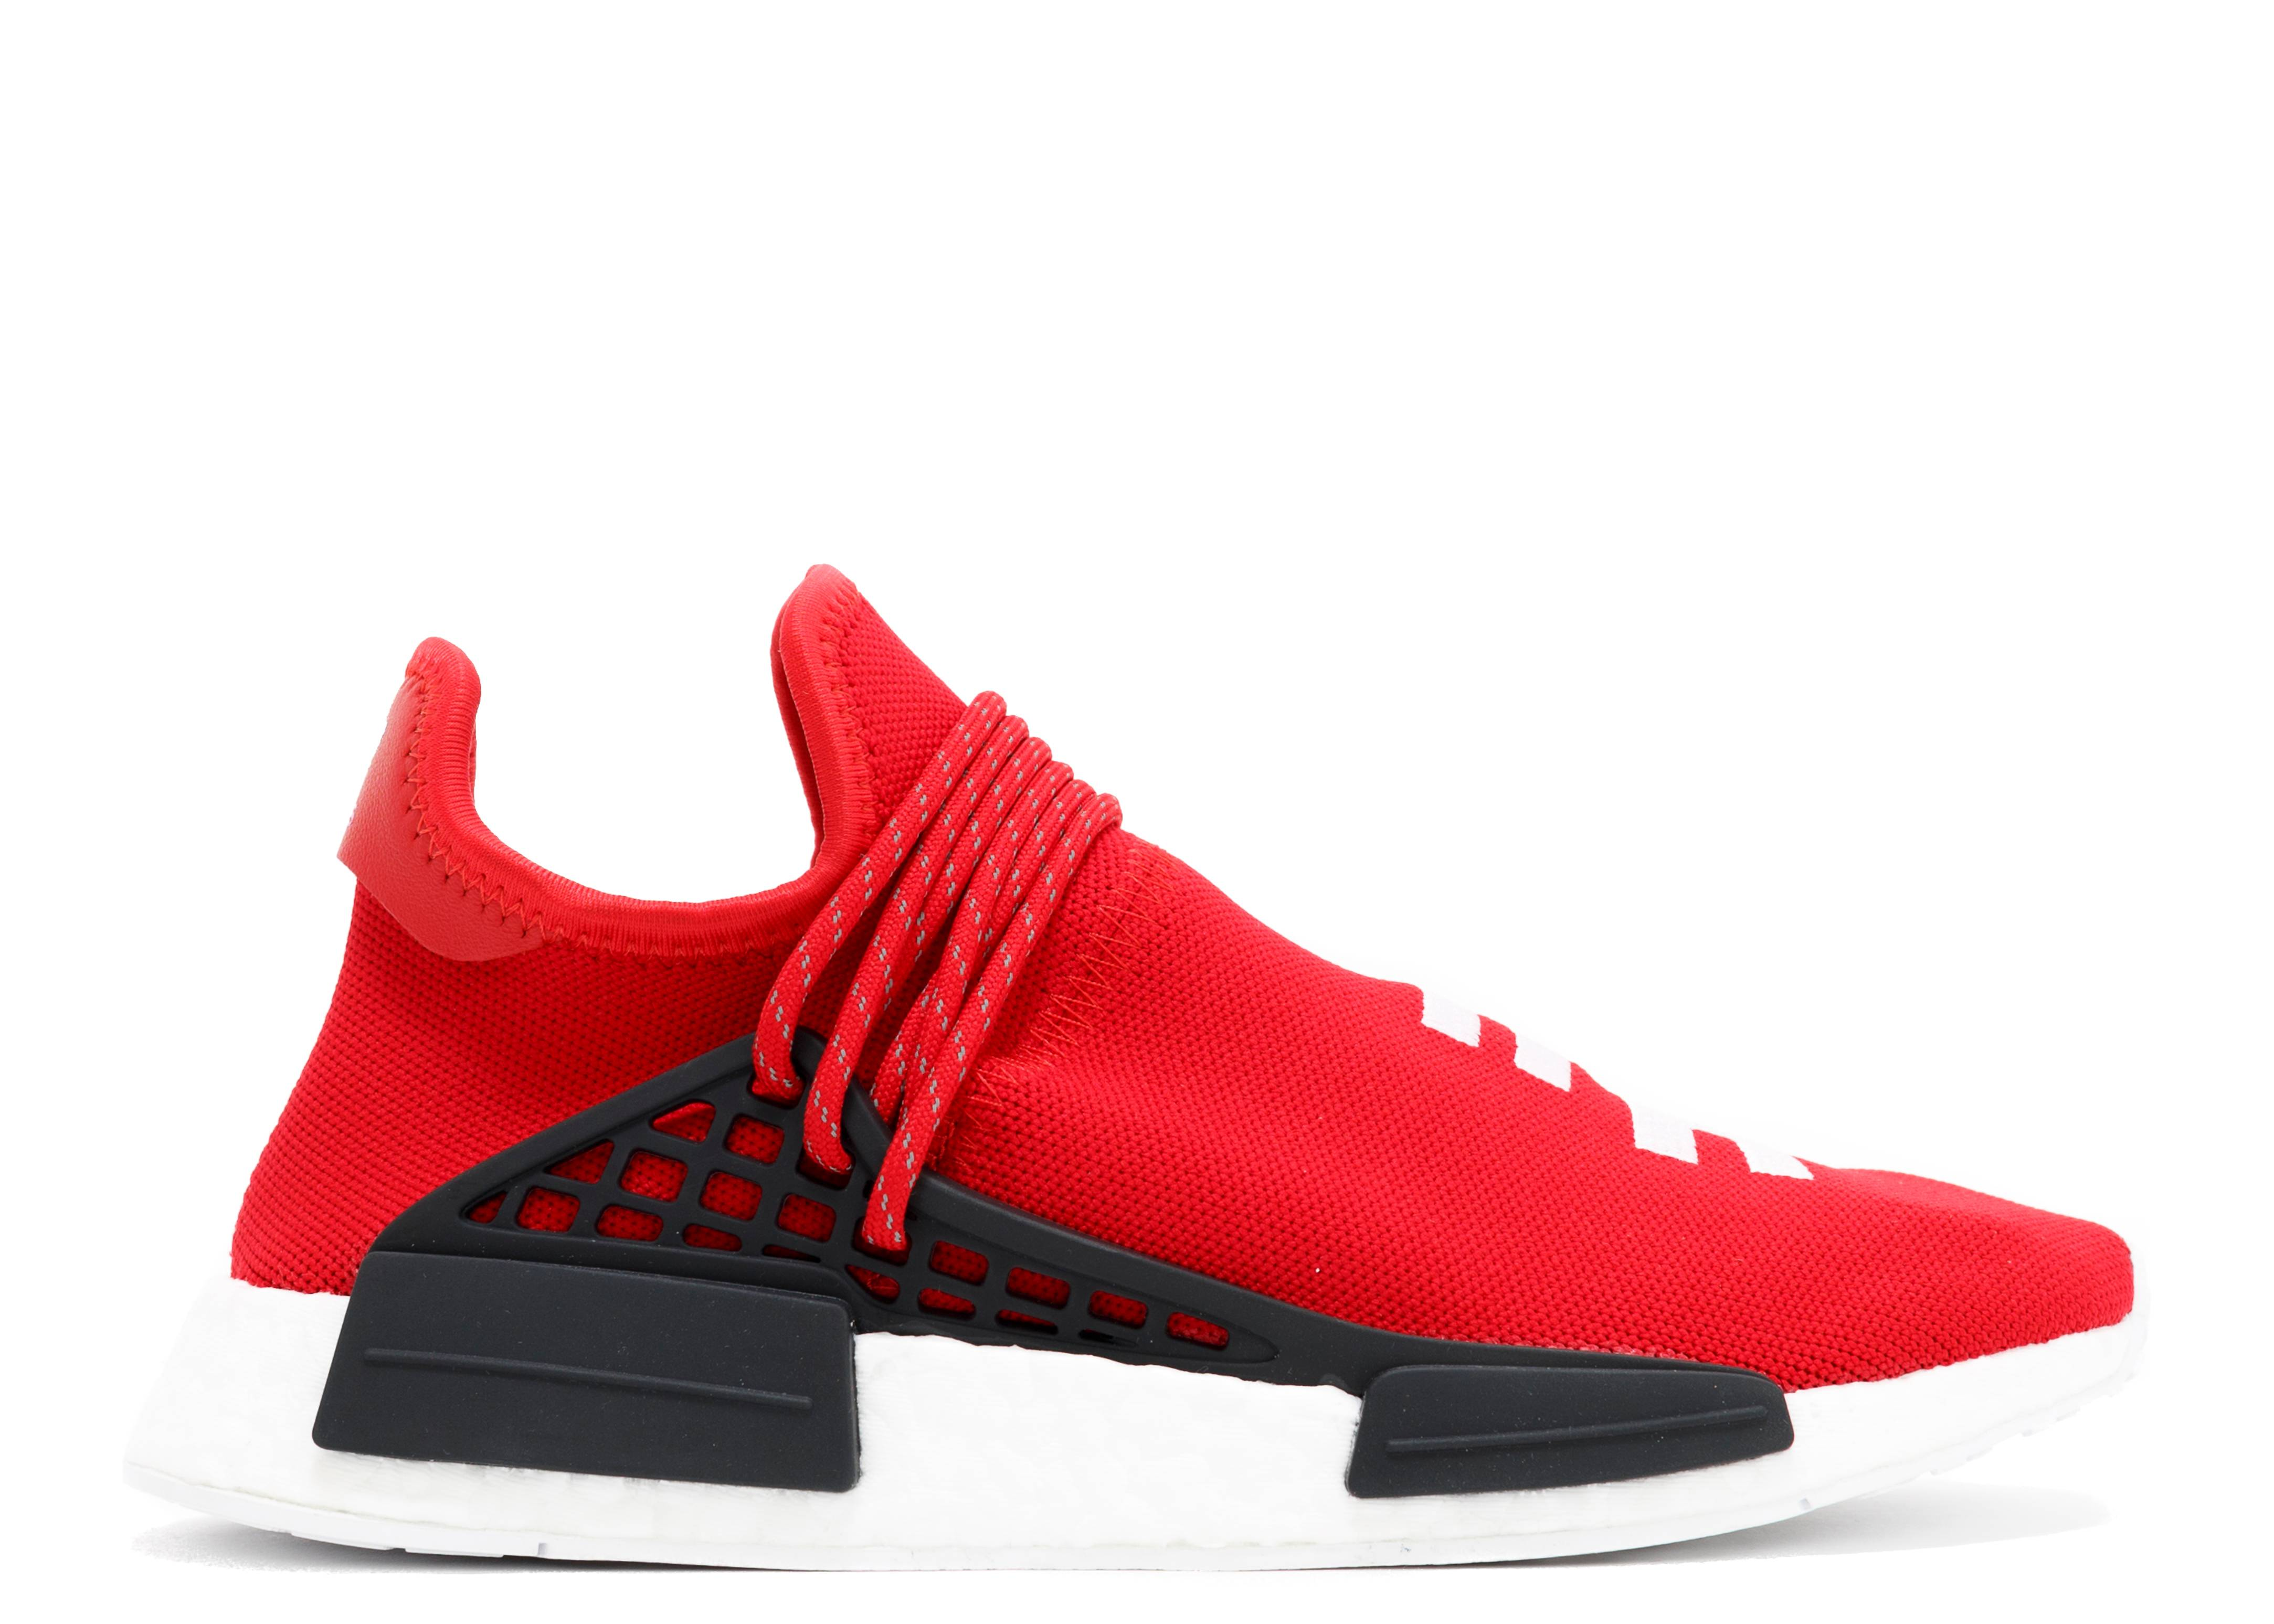 new Cheap Adidas originals nmd r2 colorways 7 21g Magazine 21